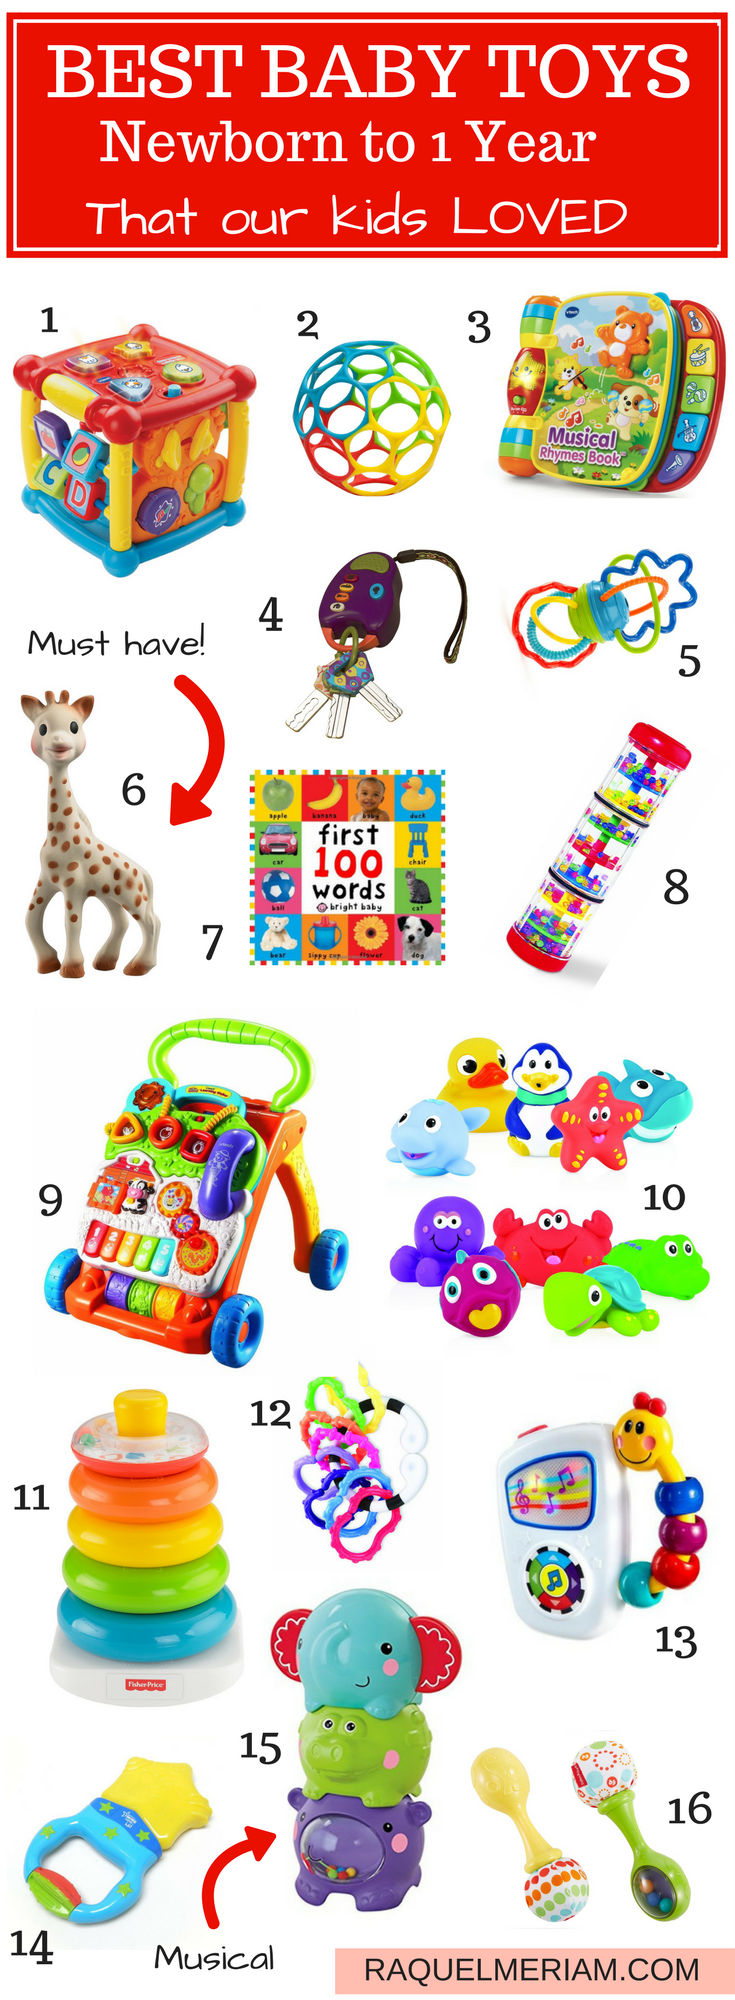 1 year baby toys images  Best Baby Toys Newborn to  Year  Baby Ideas  Pinterest  Baby